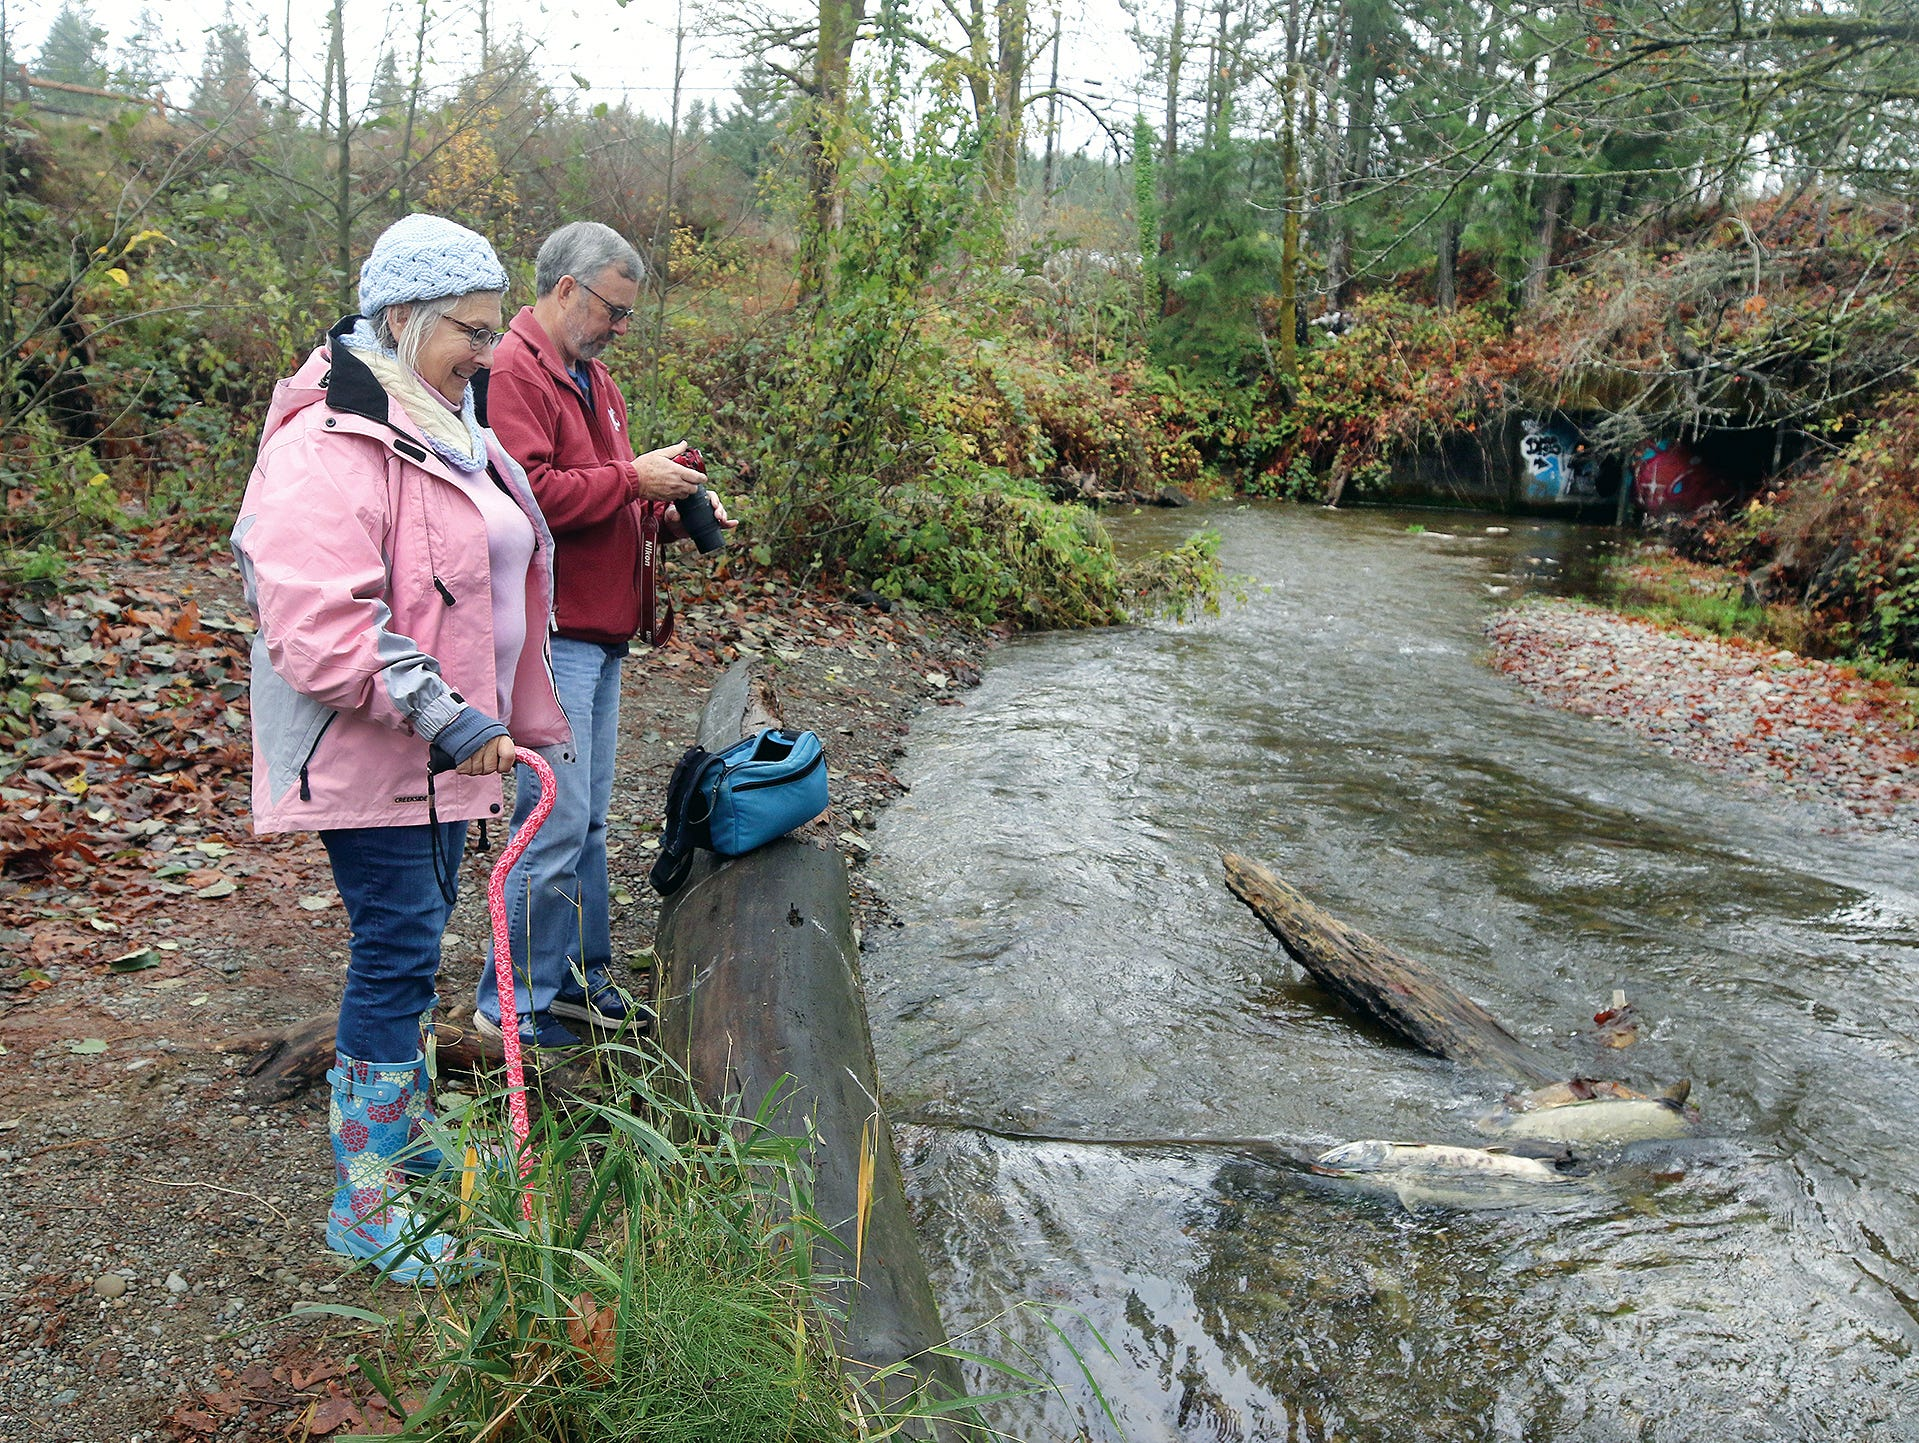 Patricia and Daryll Brady of Bremerton watch the salmon at the Chico Salmon Park on Friday, November, 23, 2018. Chico Creek has finally gotten enough rain for the chum salmon to spawn.